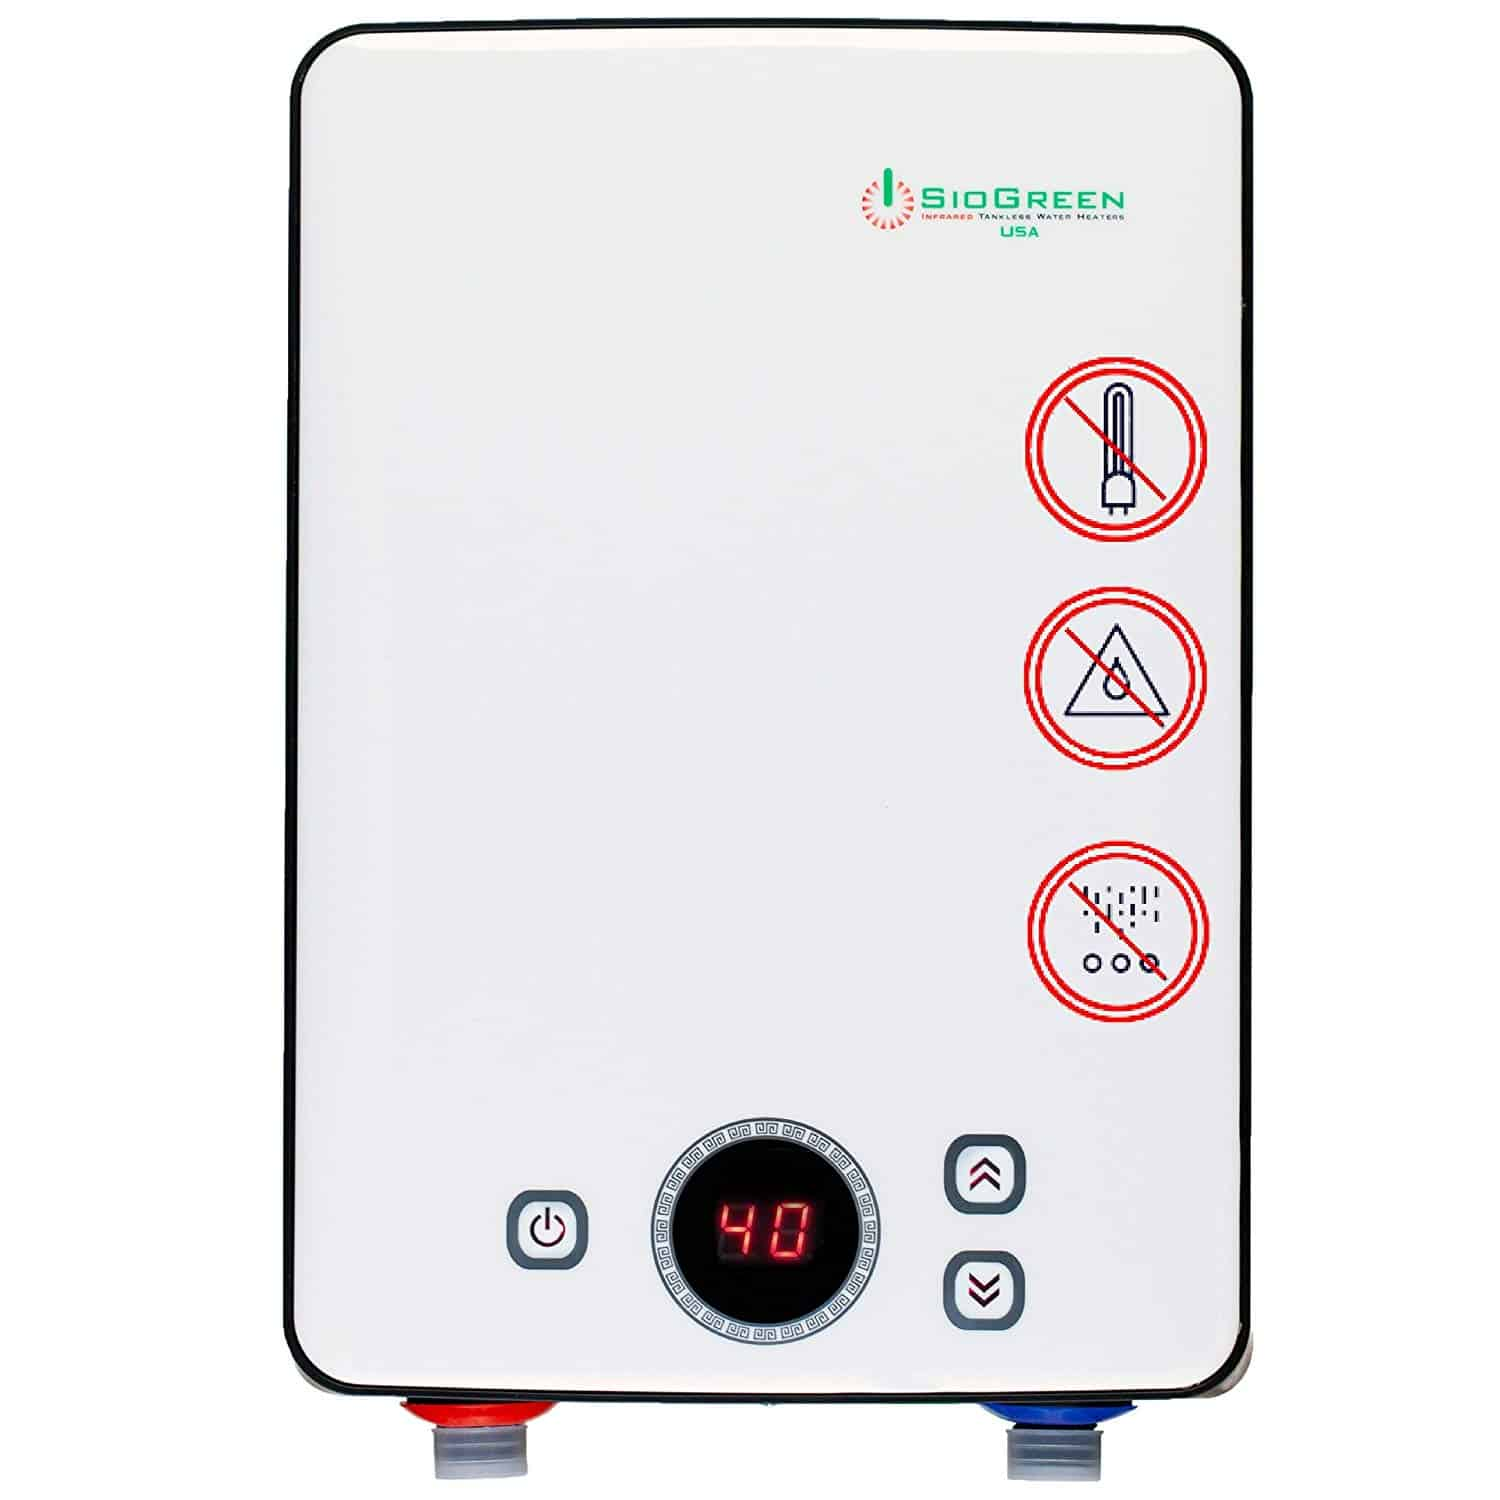 Siogreen Ir260 Tankless Water Heater Review Just Home